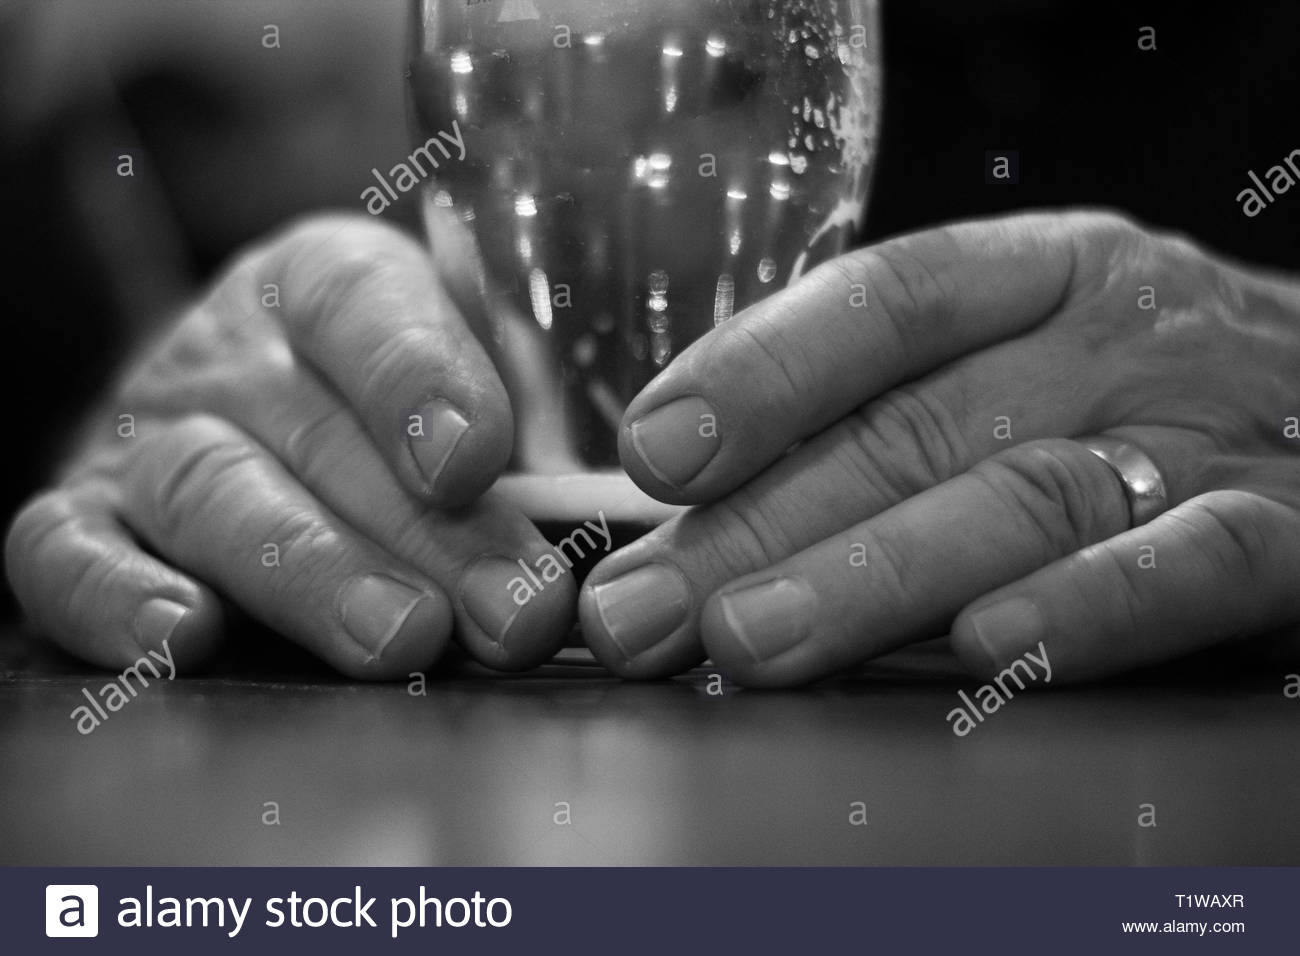 Old Mans Black and White Stock Photos & Images - Alamy